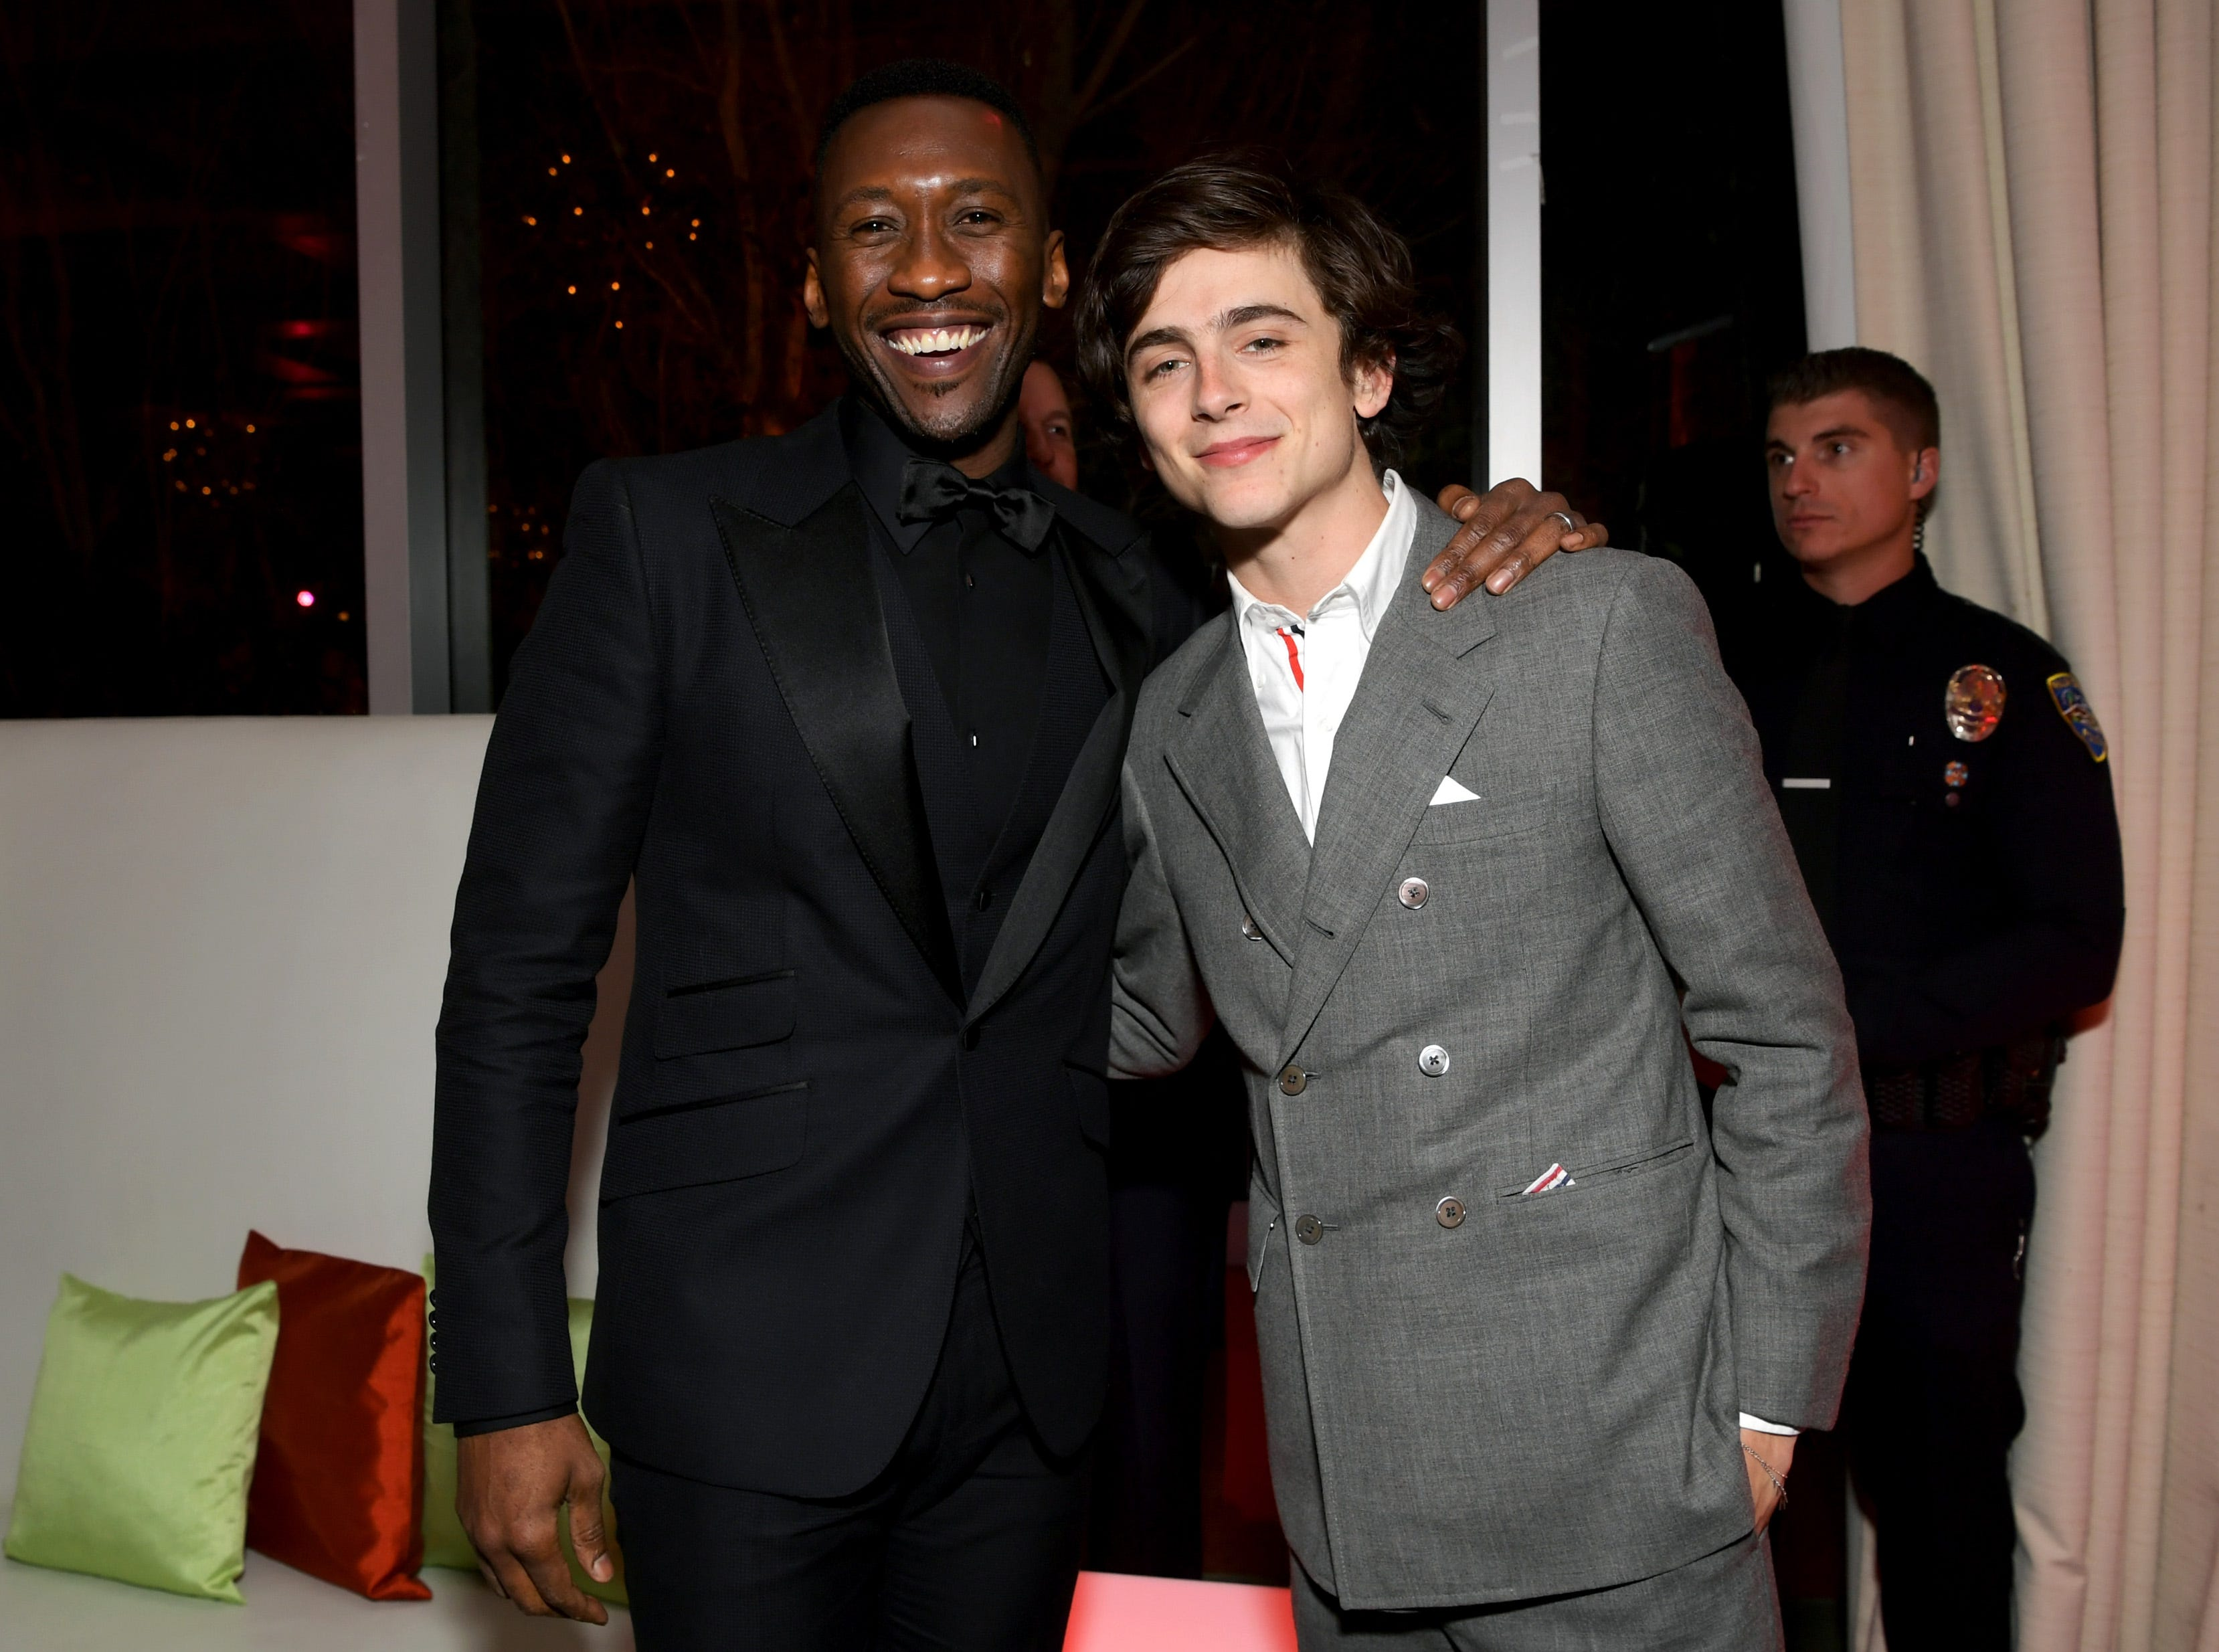 PALM SPRINGS, CA - JANUARY 03:  Mahershala Ali (L) and Timothee Chalamet attend the 30th Annual Palm Springs International Film Festival Film Awards Gala at Palm Springs Convention Center on January 3, 2019 in Palm Springs, California.  (Photo by Emma McIntyre/Getty Images for Palm Springs International Film Festival ) ORG XMIT: 775276731 ORIG FILE ID: 1076988482